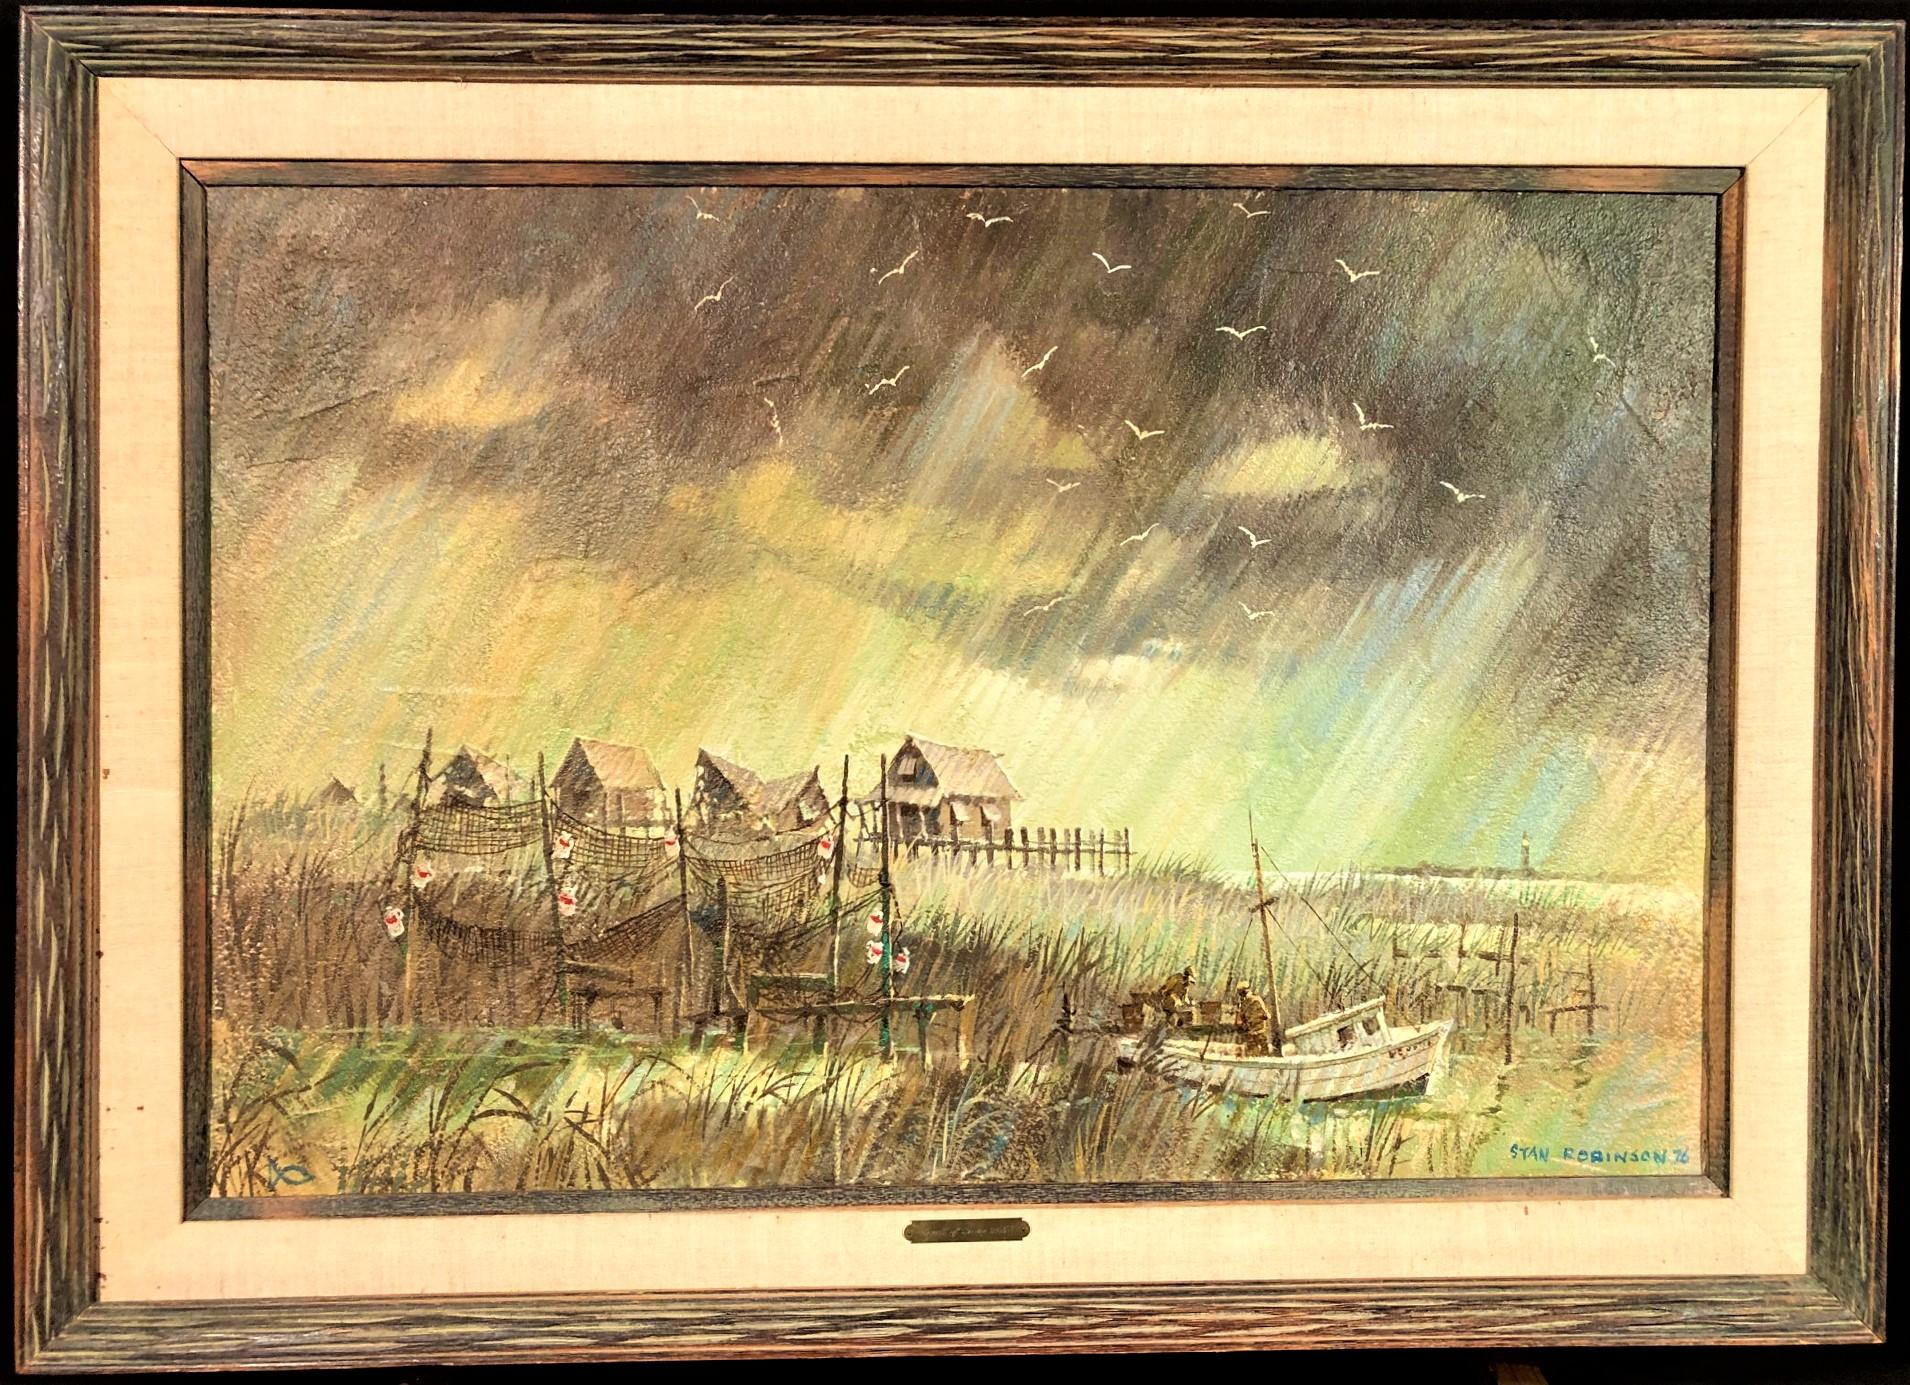 STAN ROBINSON (1927-1999) ORIGINAL ACRYLIC ON CANVAS FRAMED PAINTING - 42in x 30in x 1in